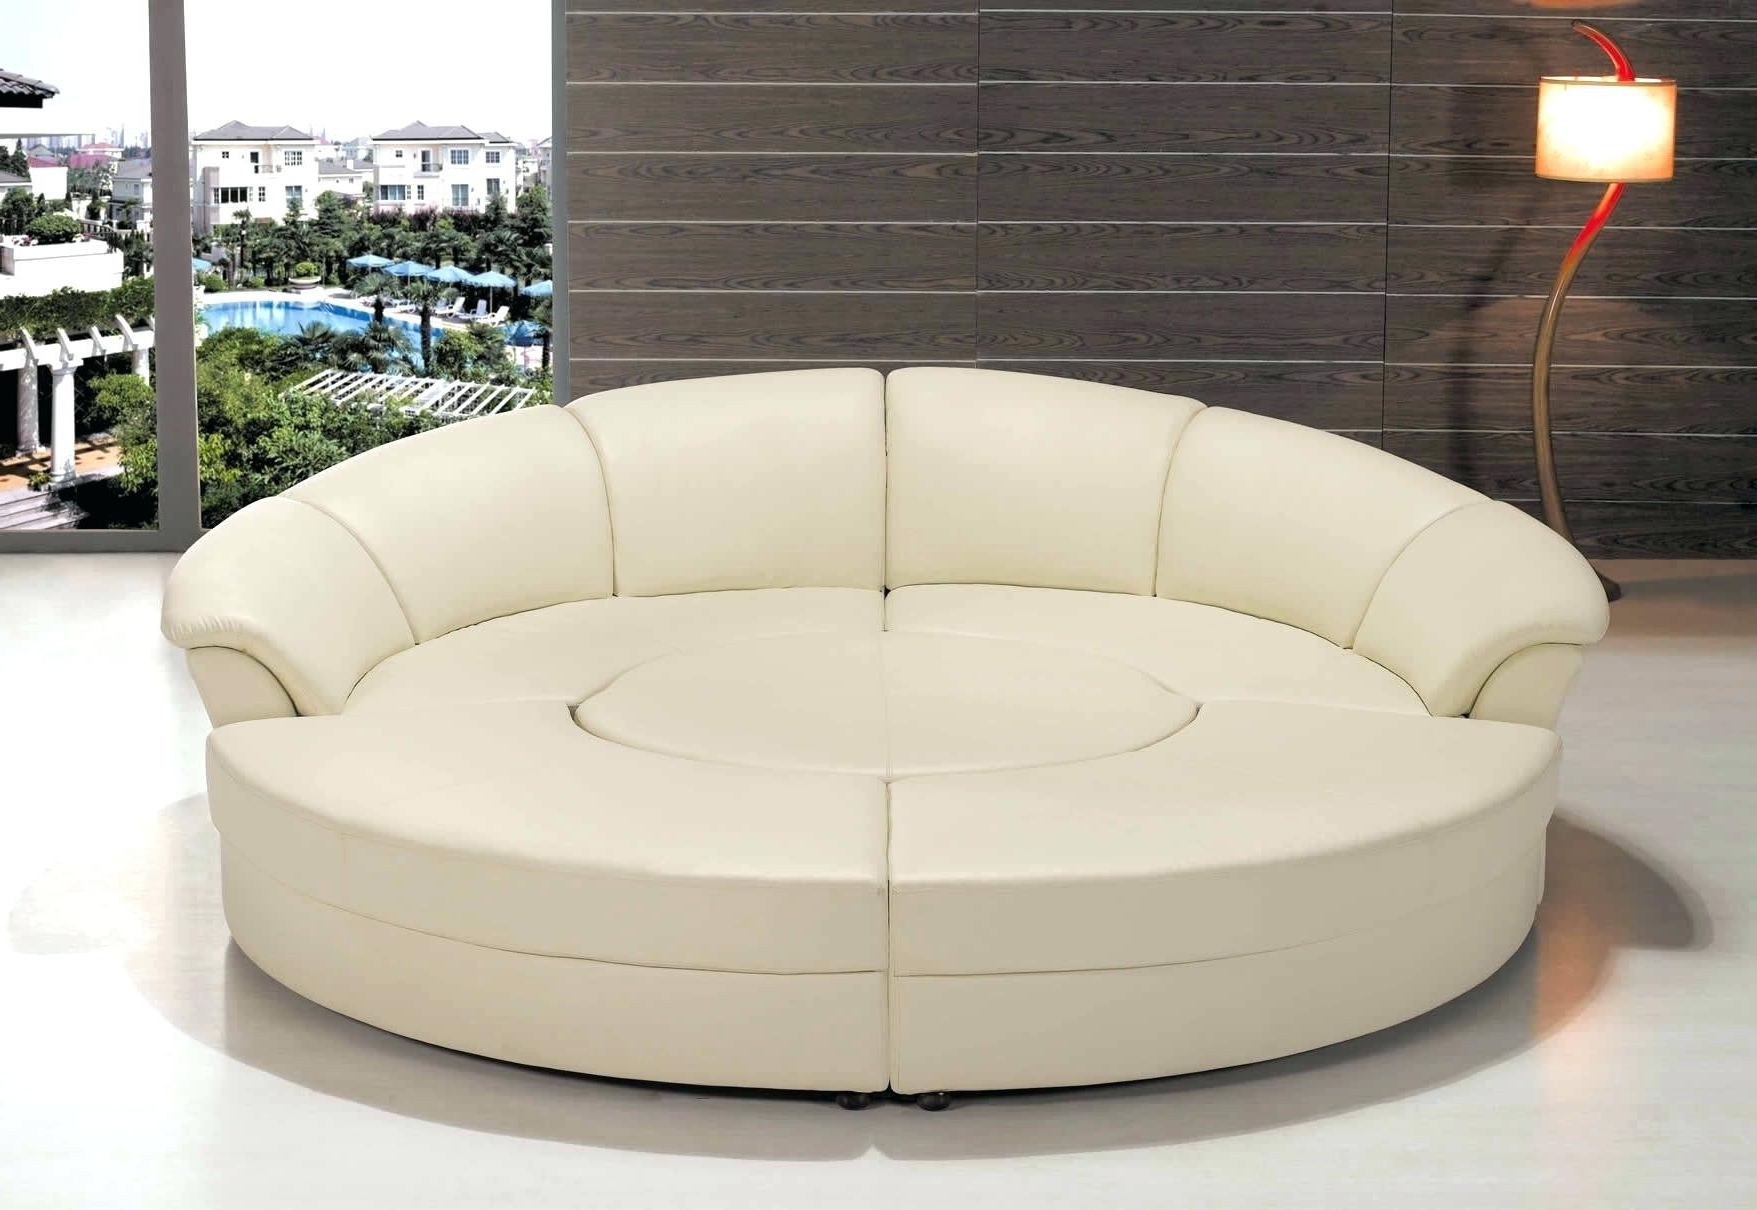 Rounded Sofas Regarding Well Known Furniture : Round Sectional Sofa Covers New Round Sofa Covers (View 4 of 15)